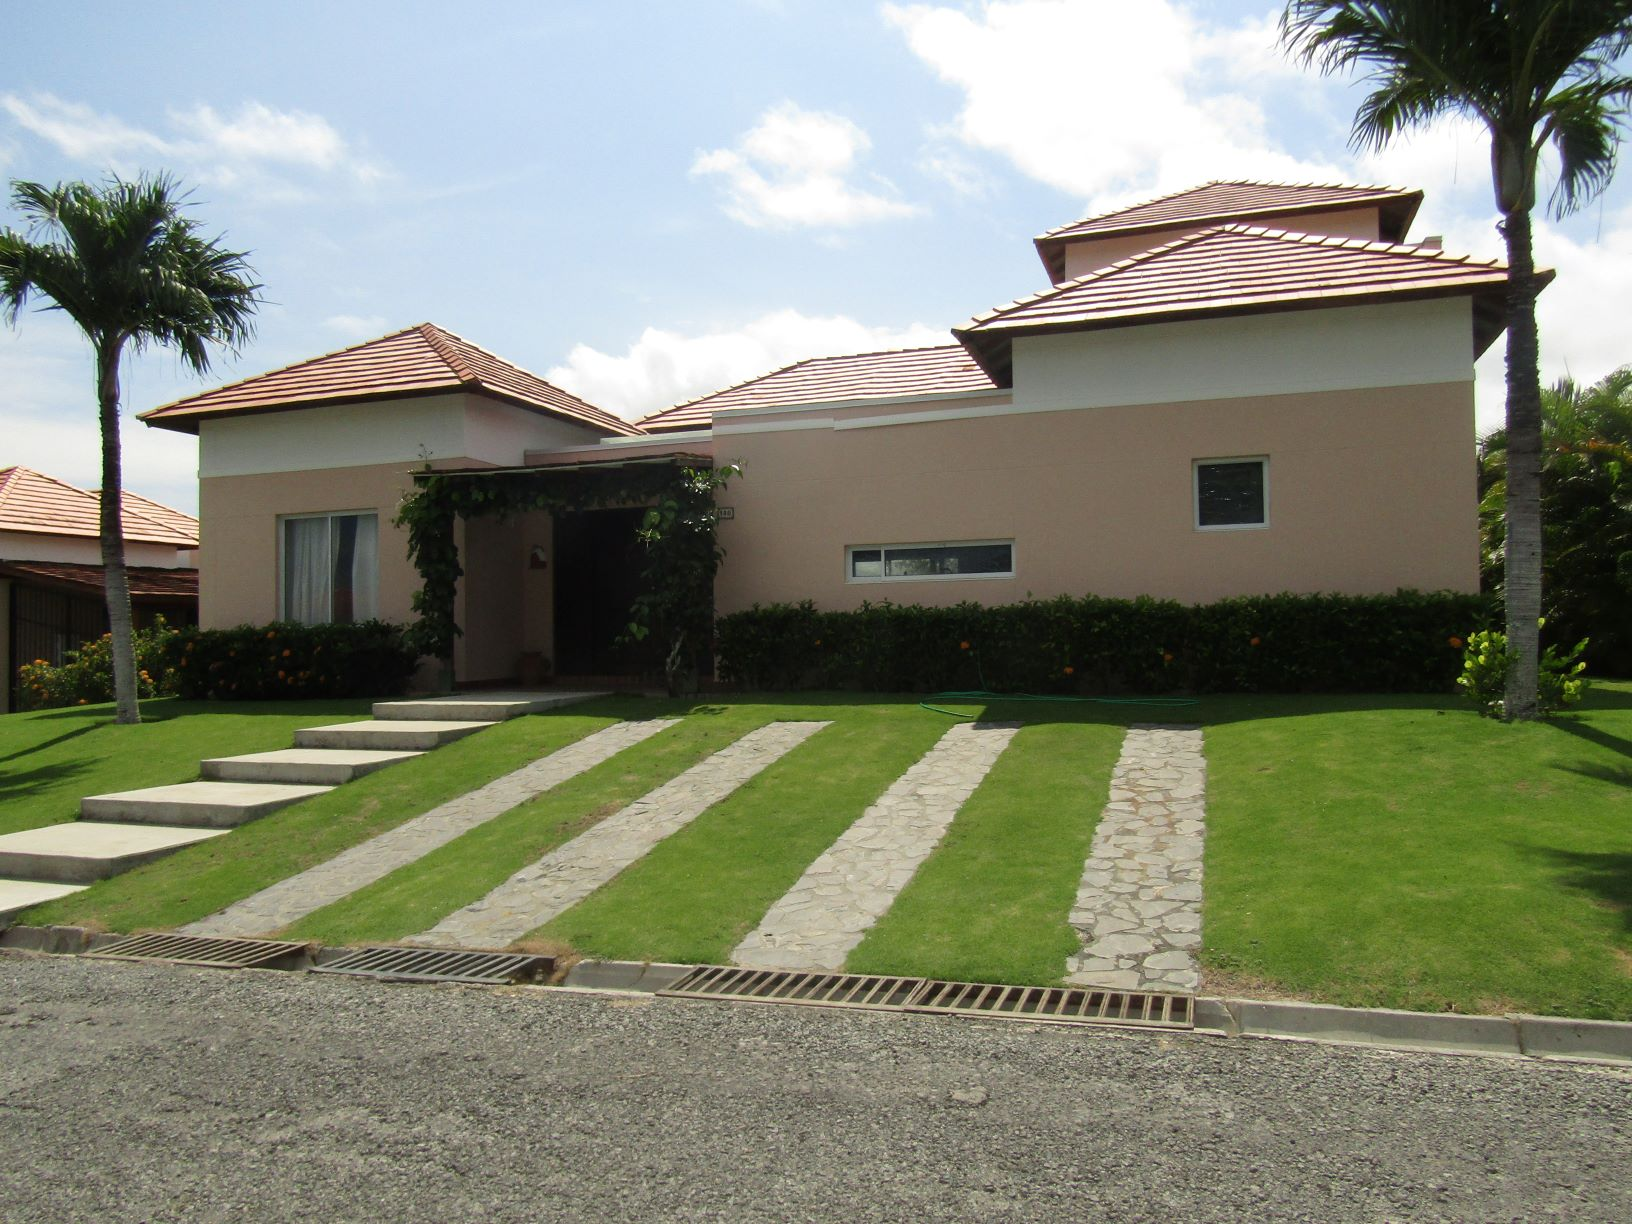 Condos for Sale in Cocle Panama